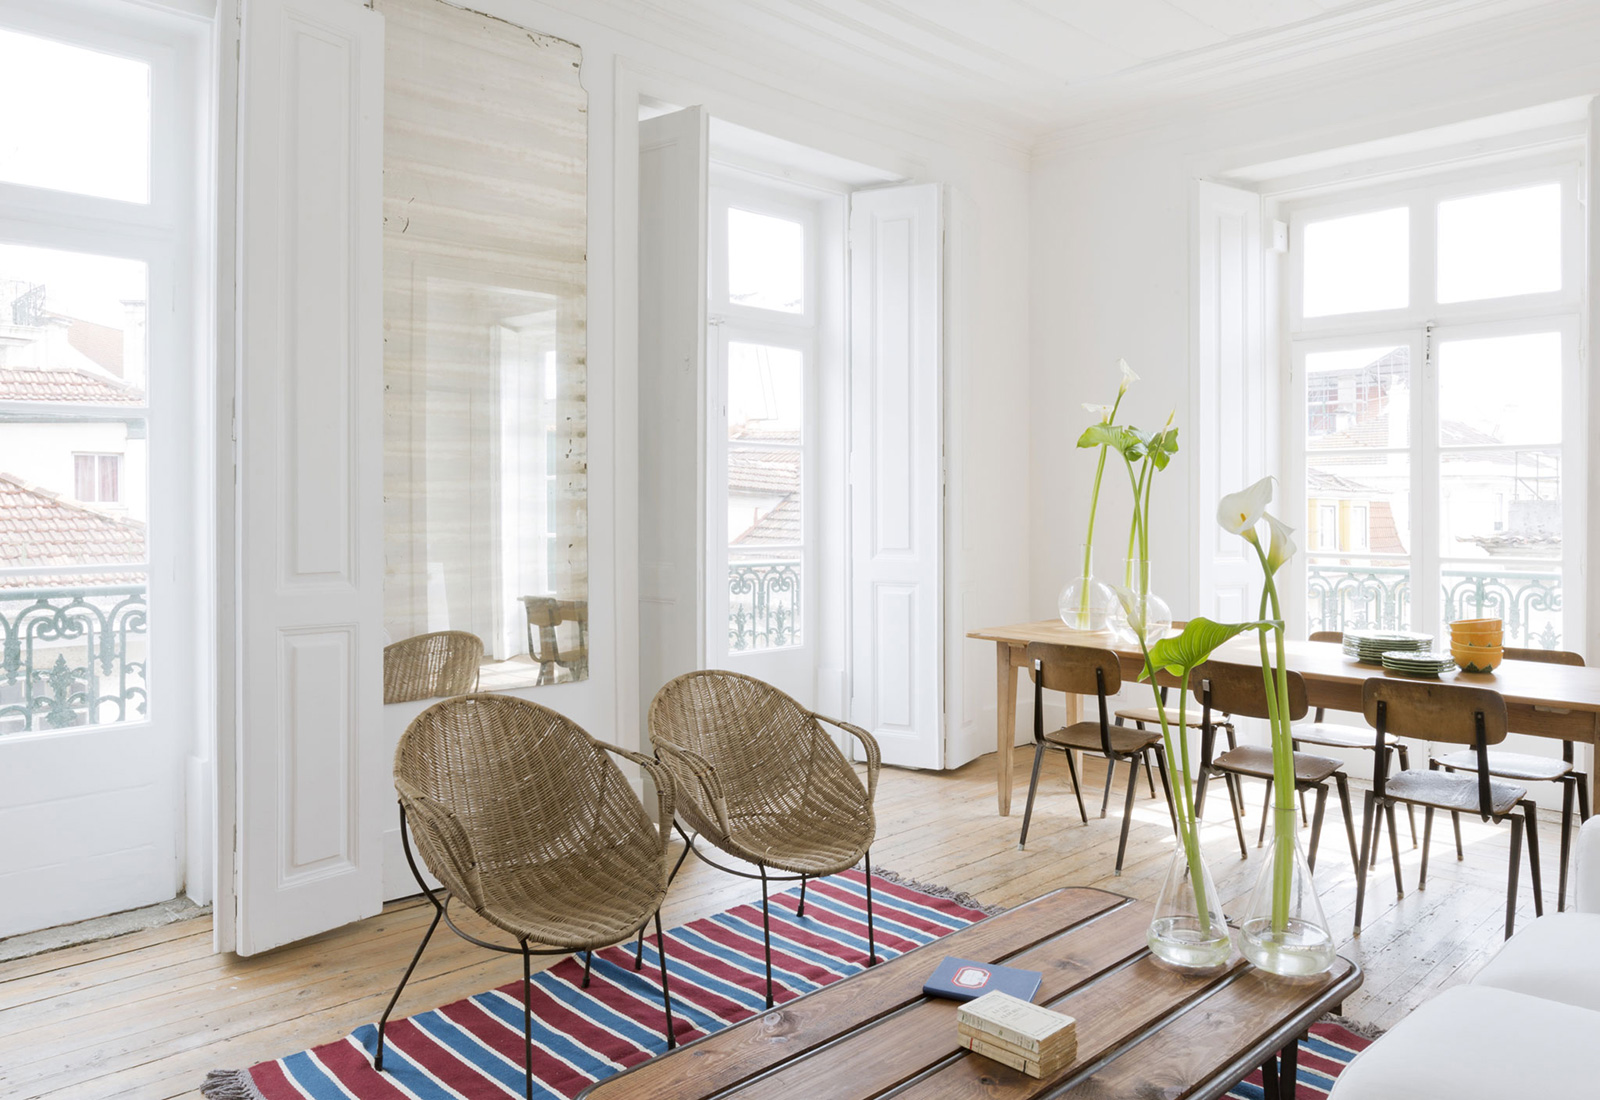 Apartments Inside 6 of the best lisbon apartments to rent